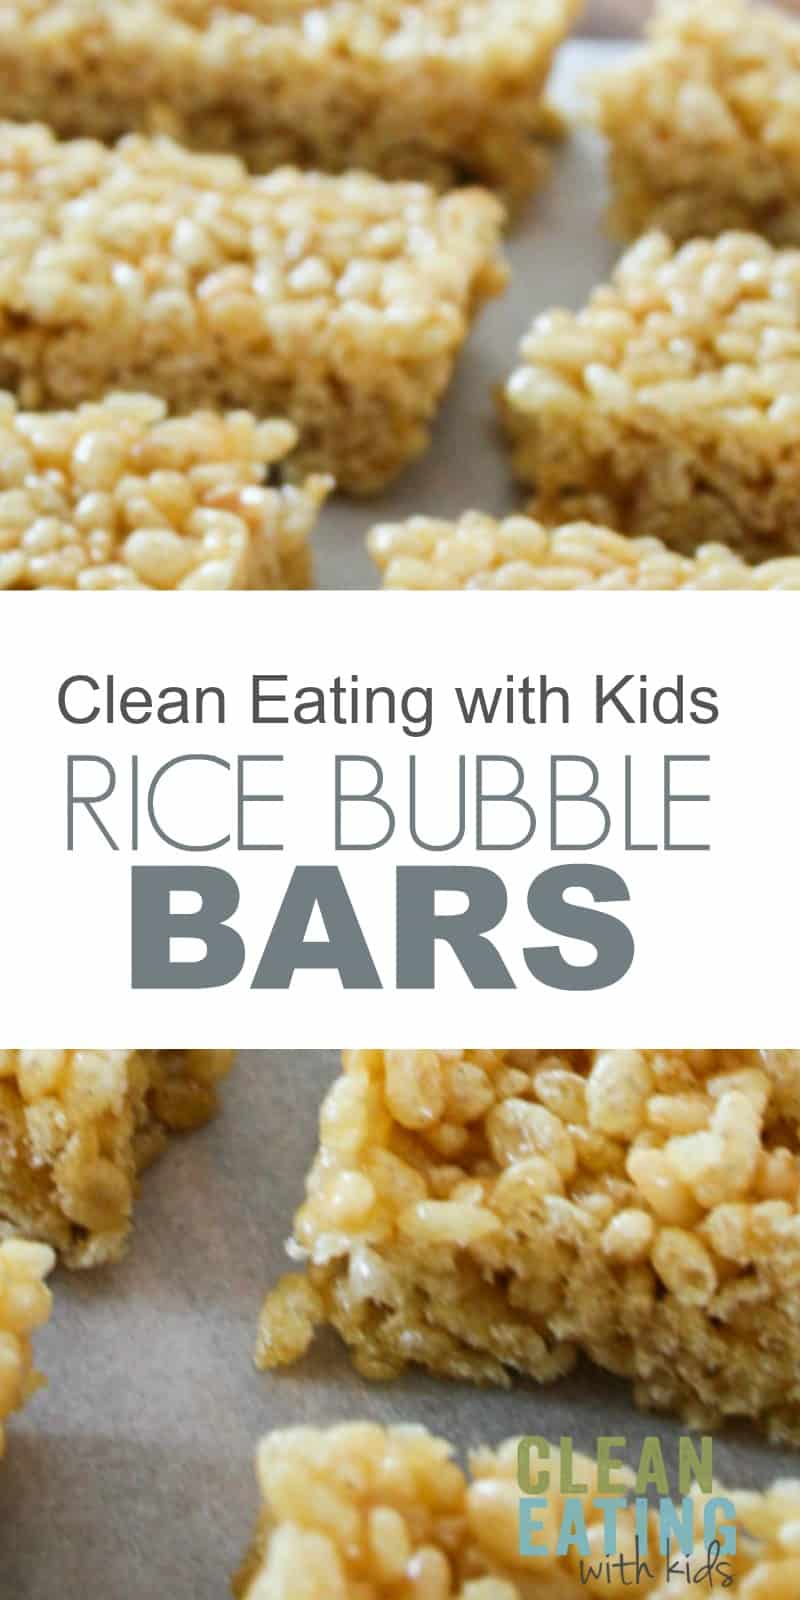 Clean Eating Rice Krispie Treats - 3 Ingredient No Bake Healthy Rice Krispy Treats- Just three ingredients and only takes 5 minutes to make.